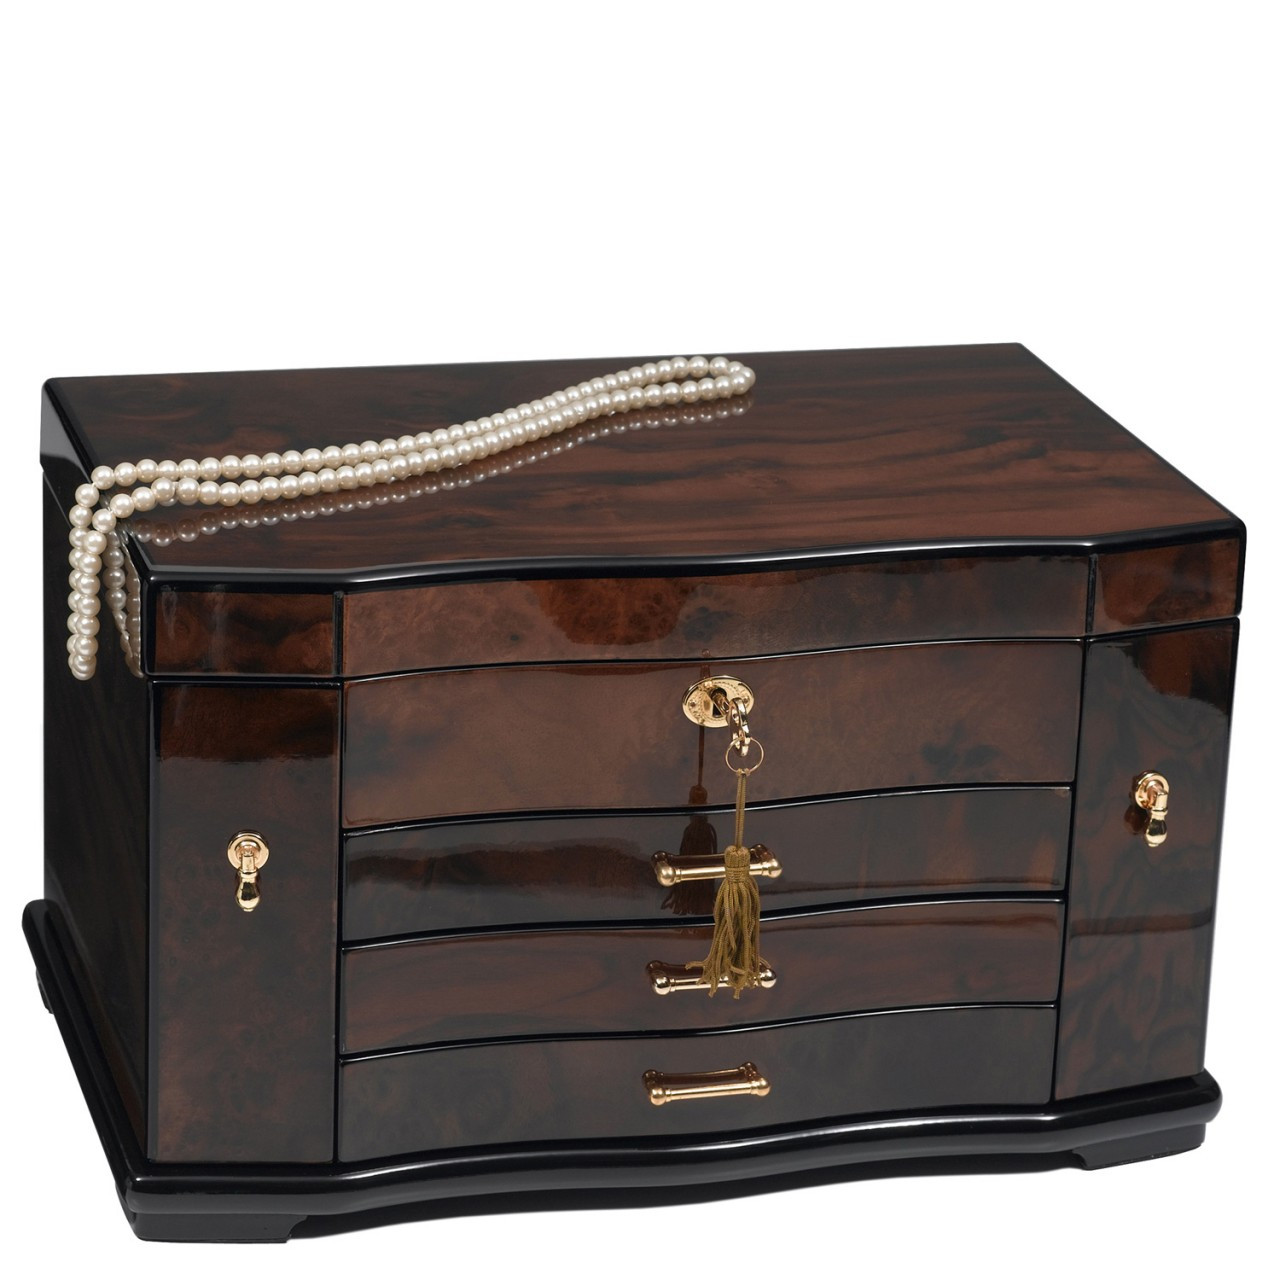 Delanna Jewelry Box